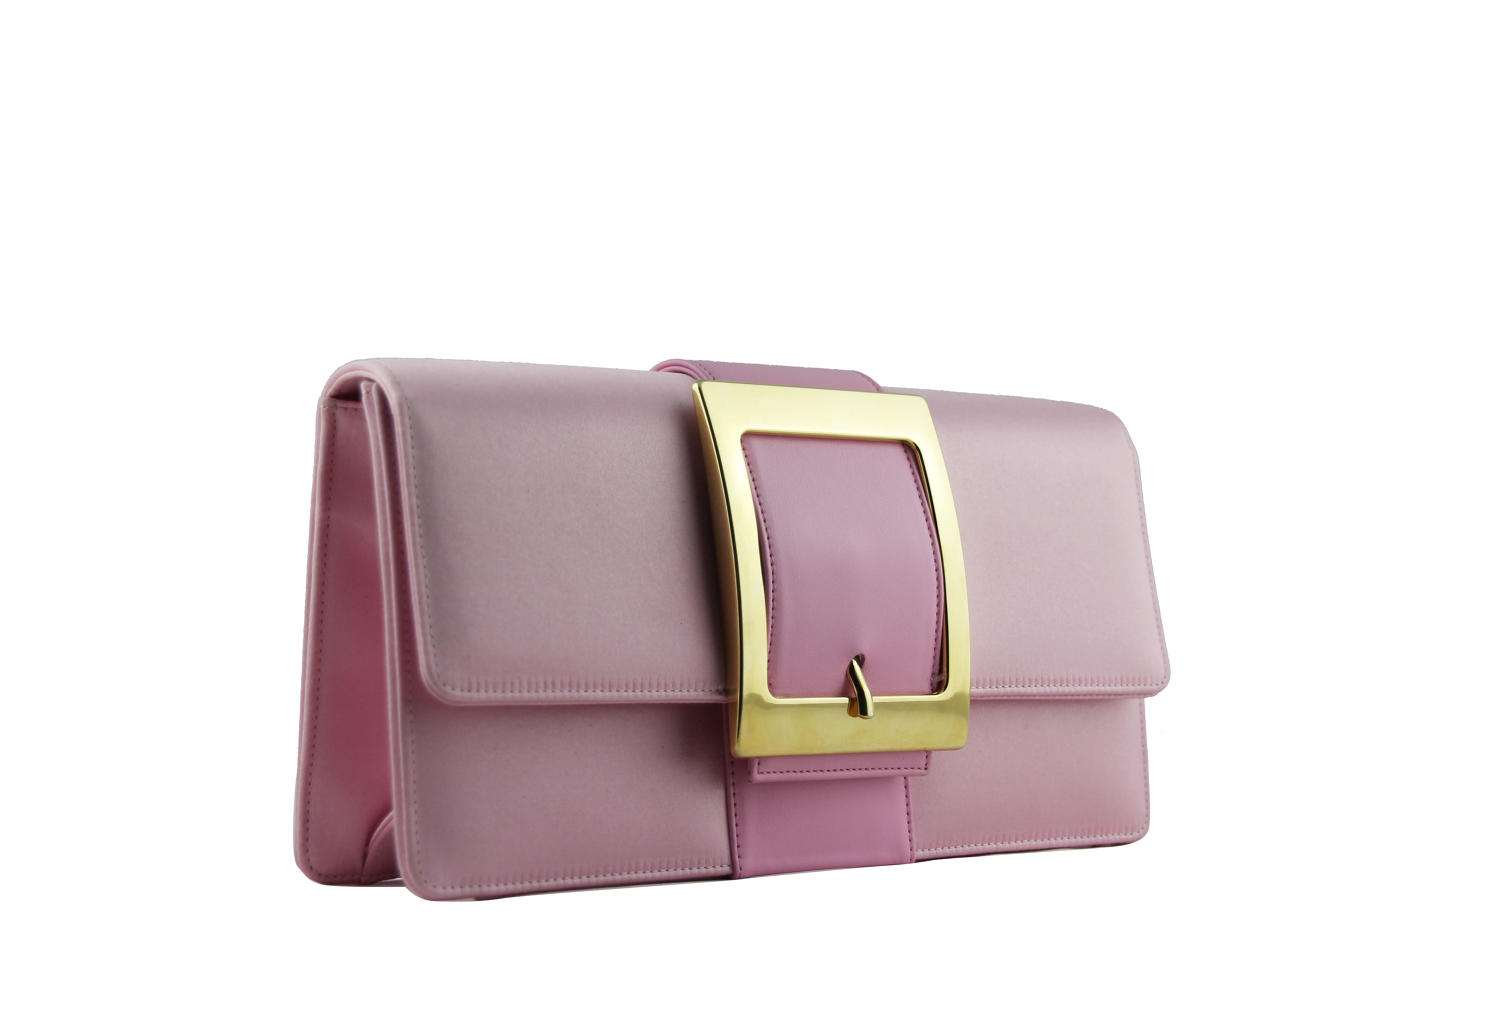 Satin and leather clutch bag